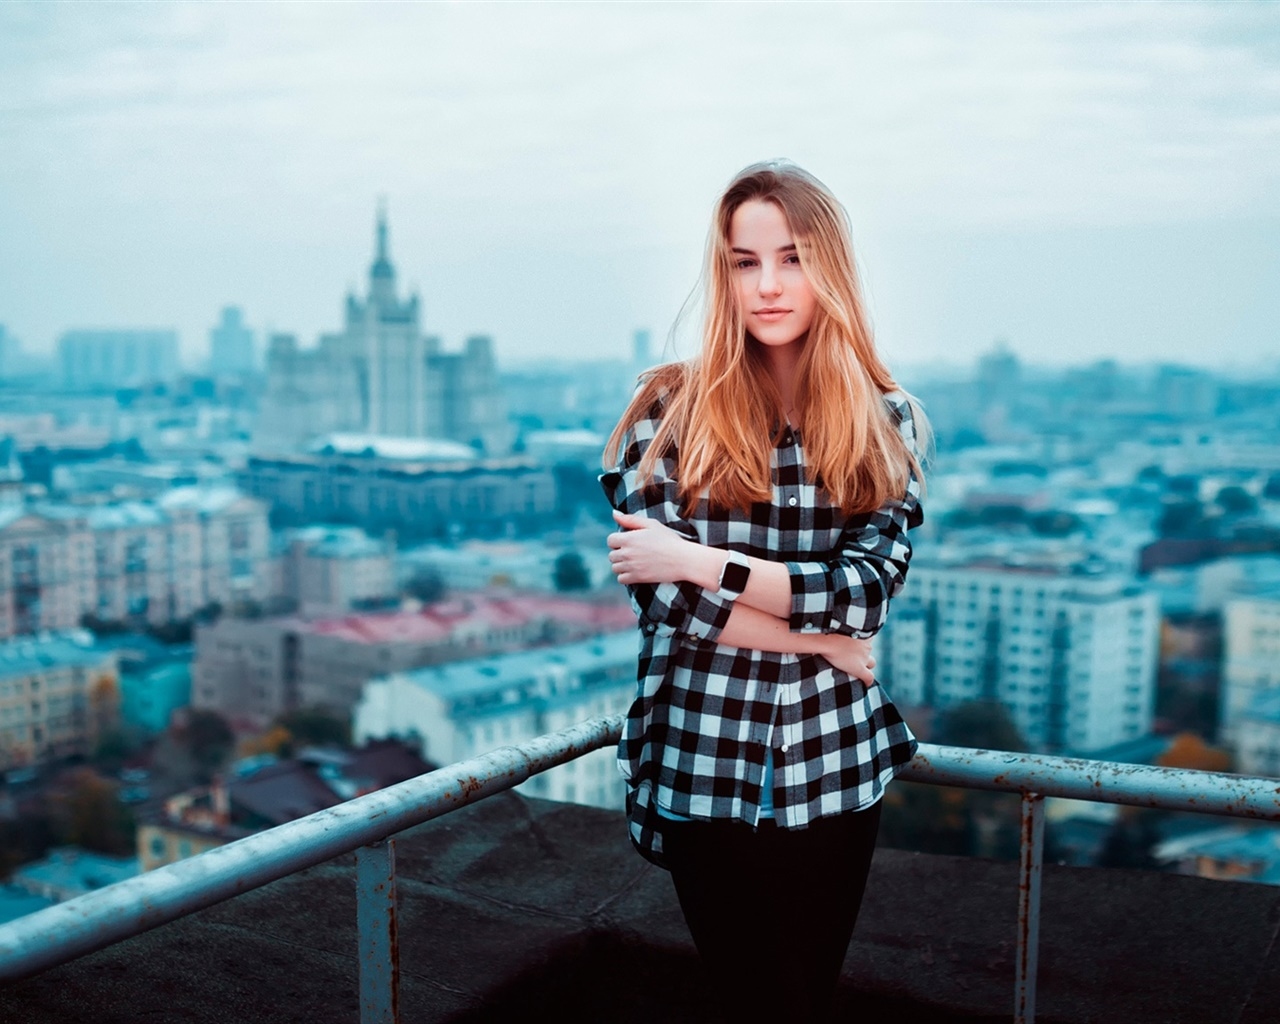 Blonde girl, roof, city 1280x1024 wallpaper